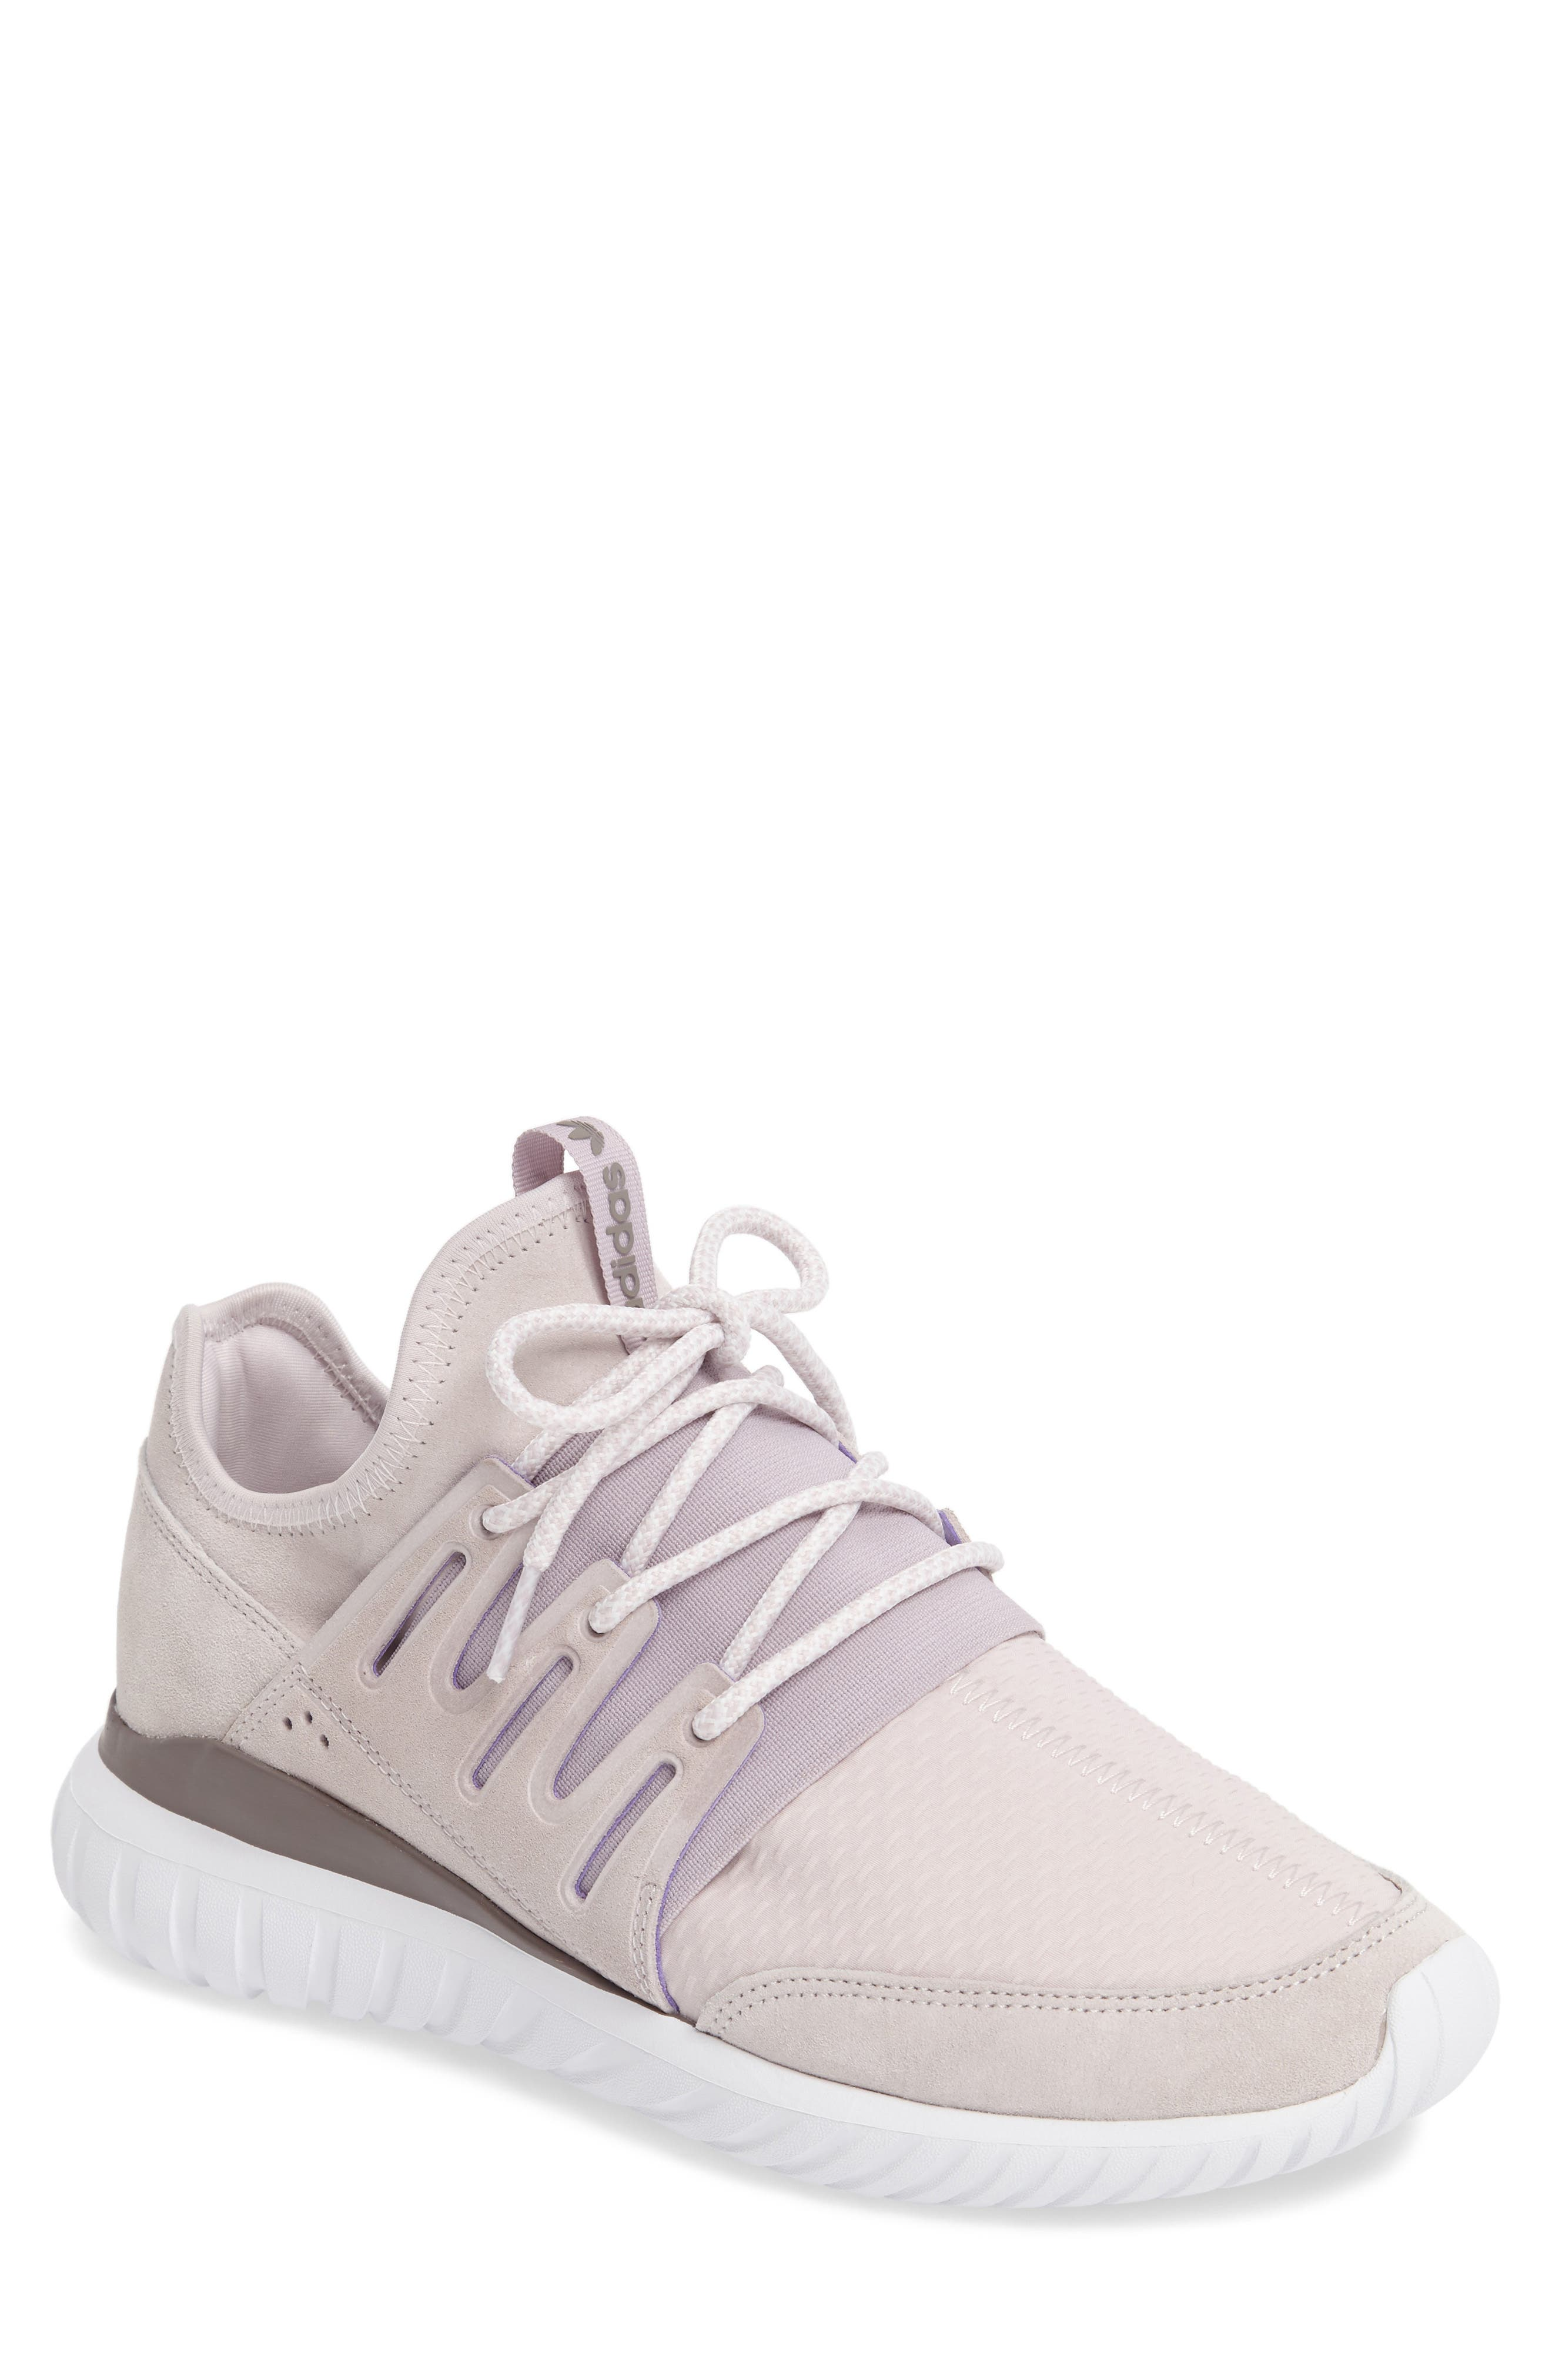 Alternate Image 1 Selected - adidas 'Tubular Radial' Sneaker (Men)